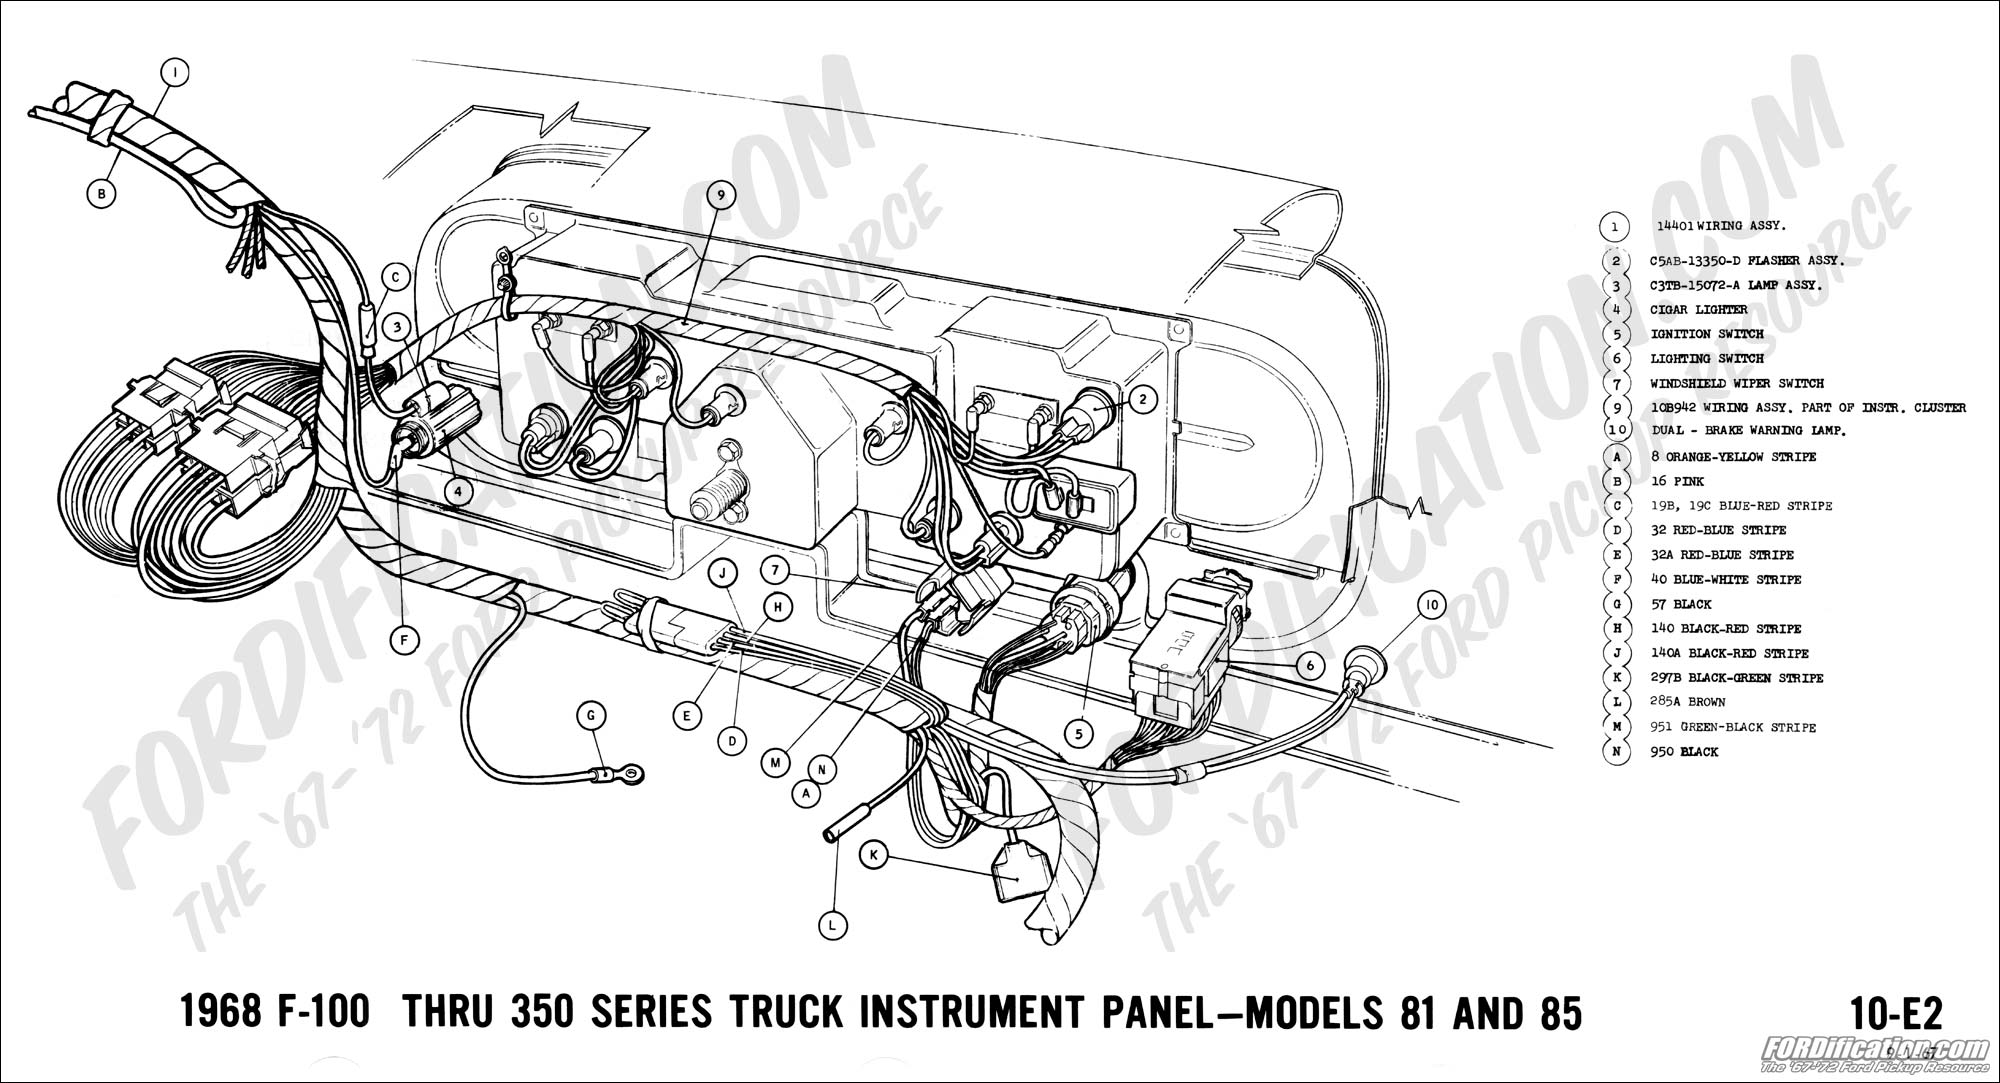 4vk4o Nissan Frontier Fog Lights The Wiring Harness Plug Lights further Toyota hilux 4 wheel drive light flashing likewise 2007 Chrysler 300 Fuse Box Diagram in addition T25387635 2011 ford f350 trying t s reverse likewise Vw Jetta Stereo Wiring Diagram With Passat Radio Within. on ford focus fuse box diagram